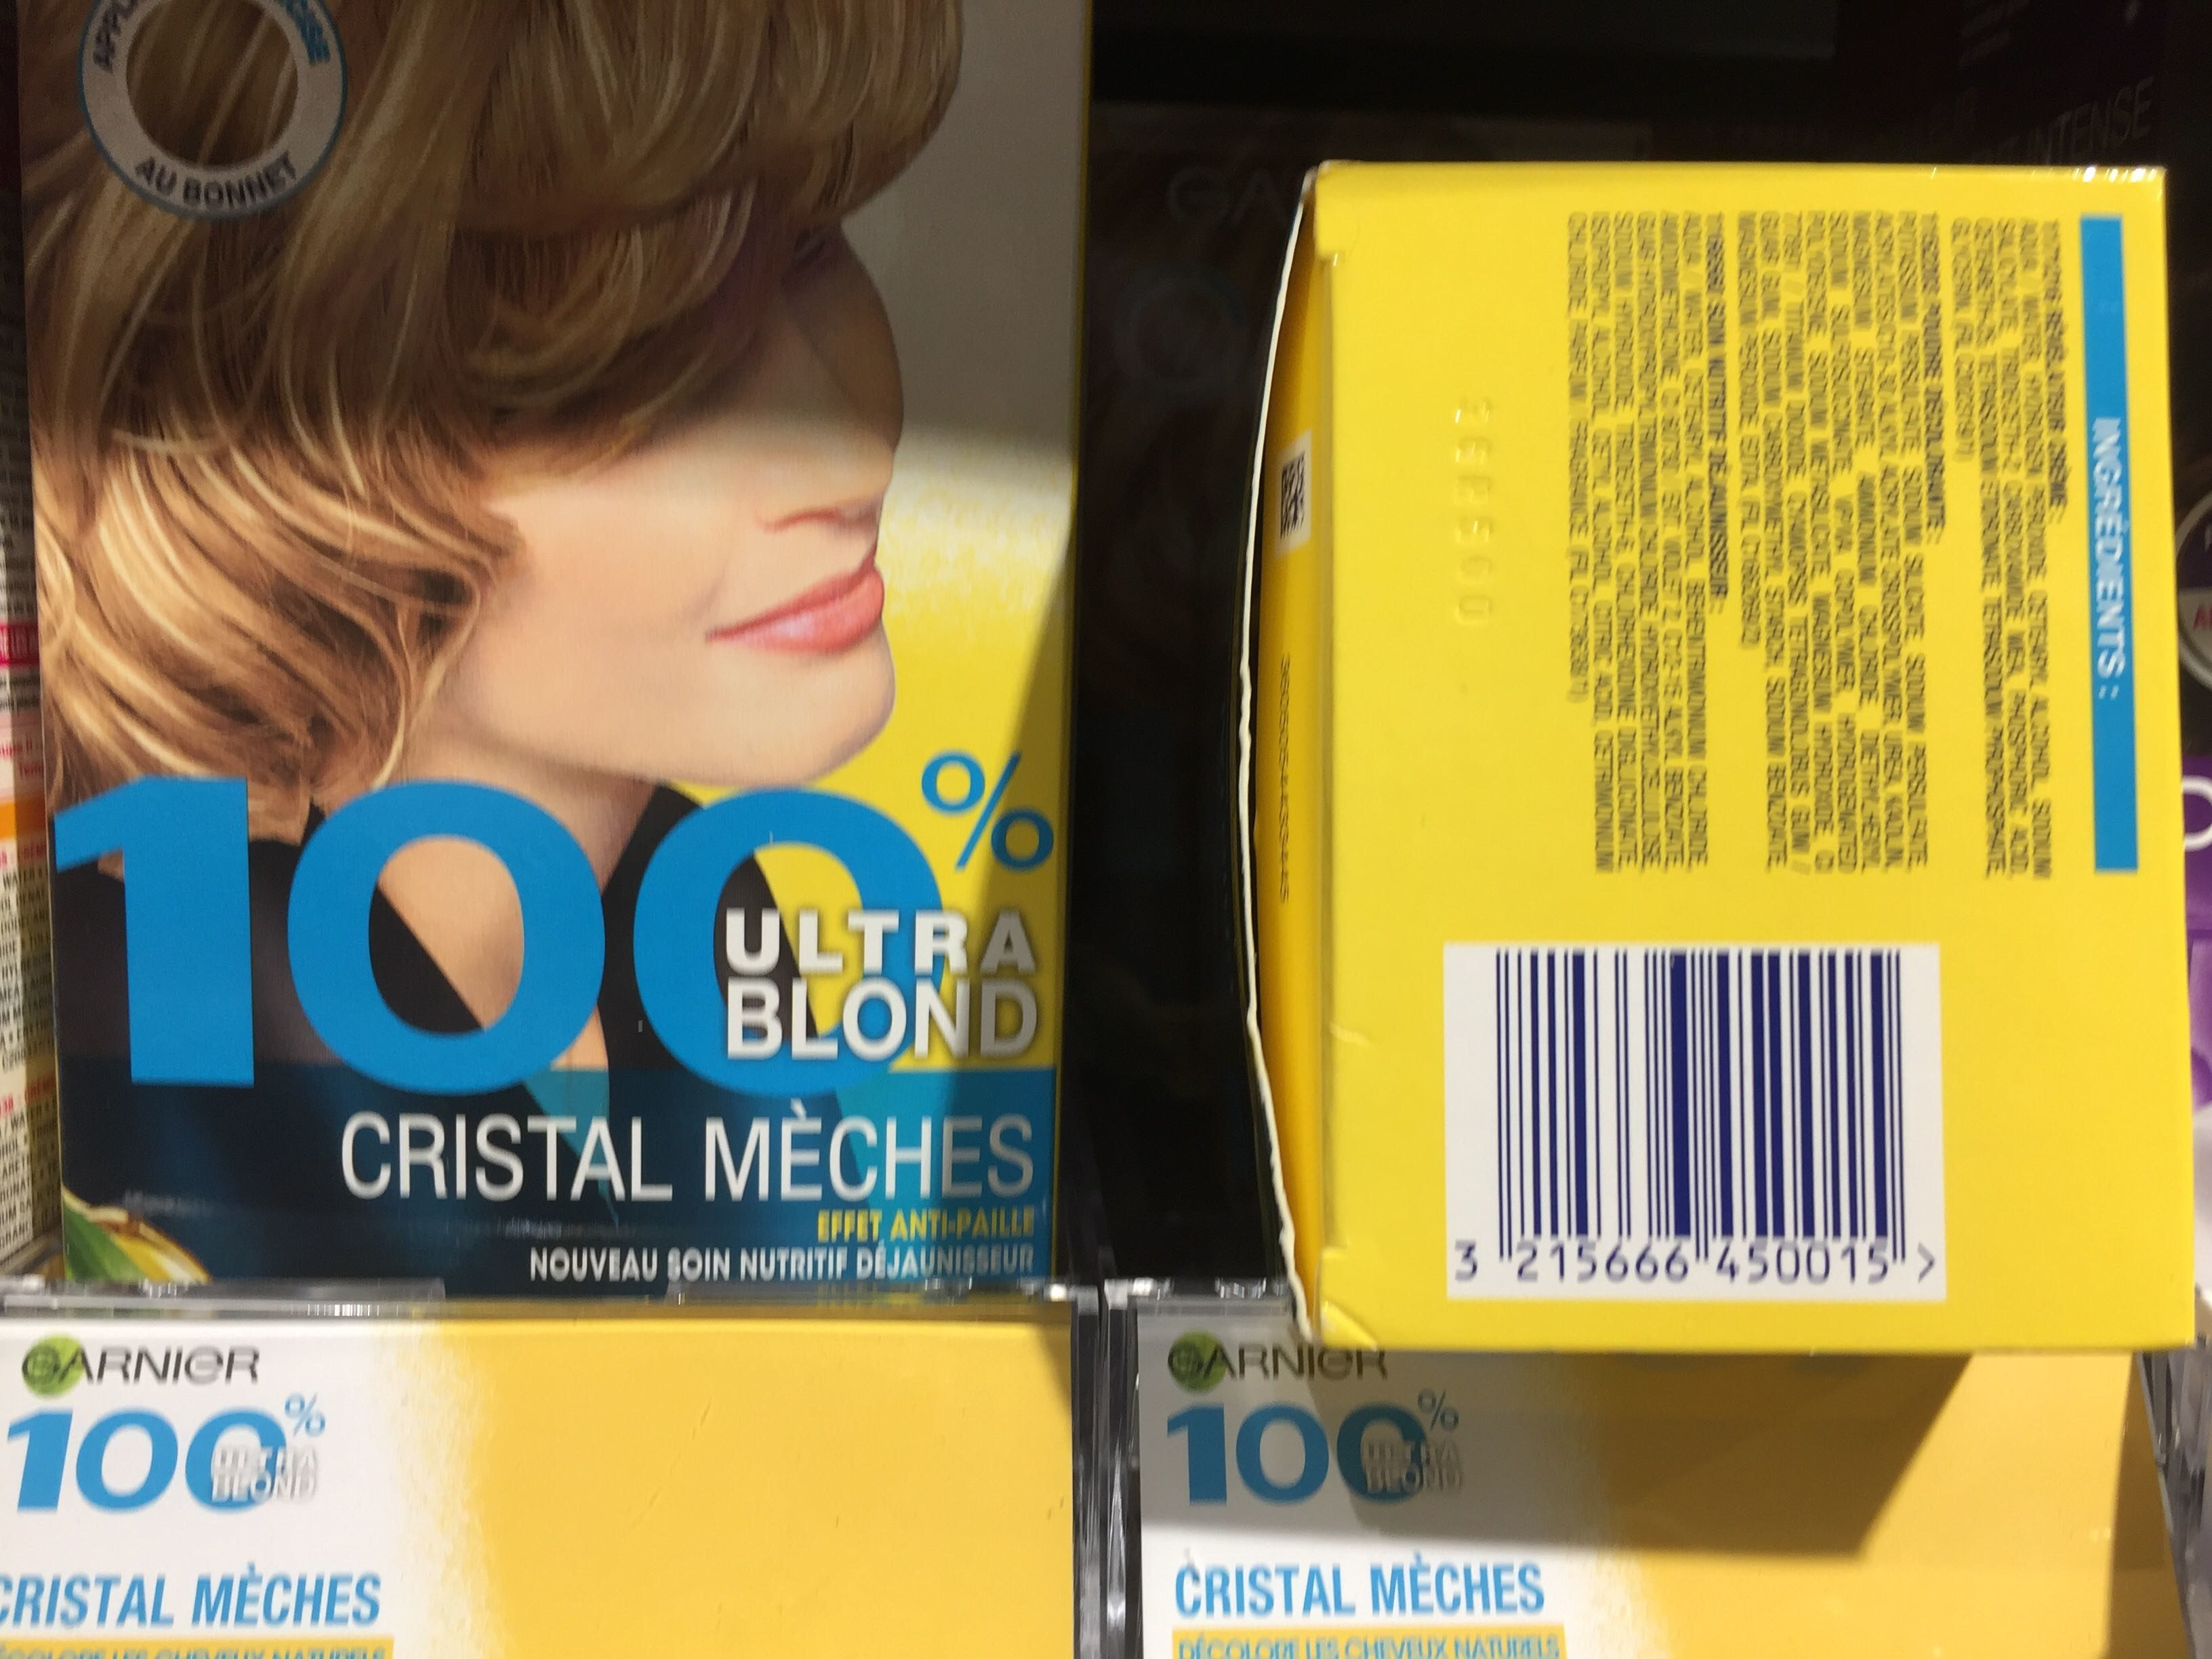 Cristal mèches - Product